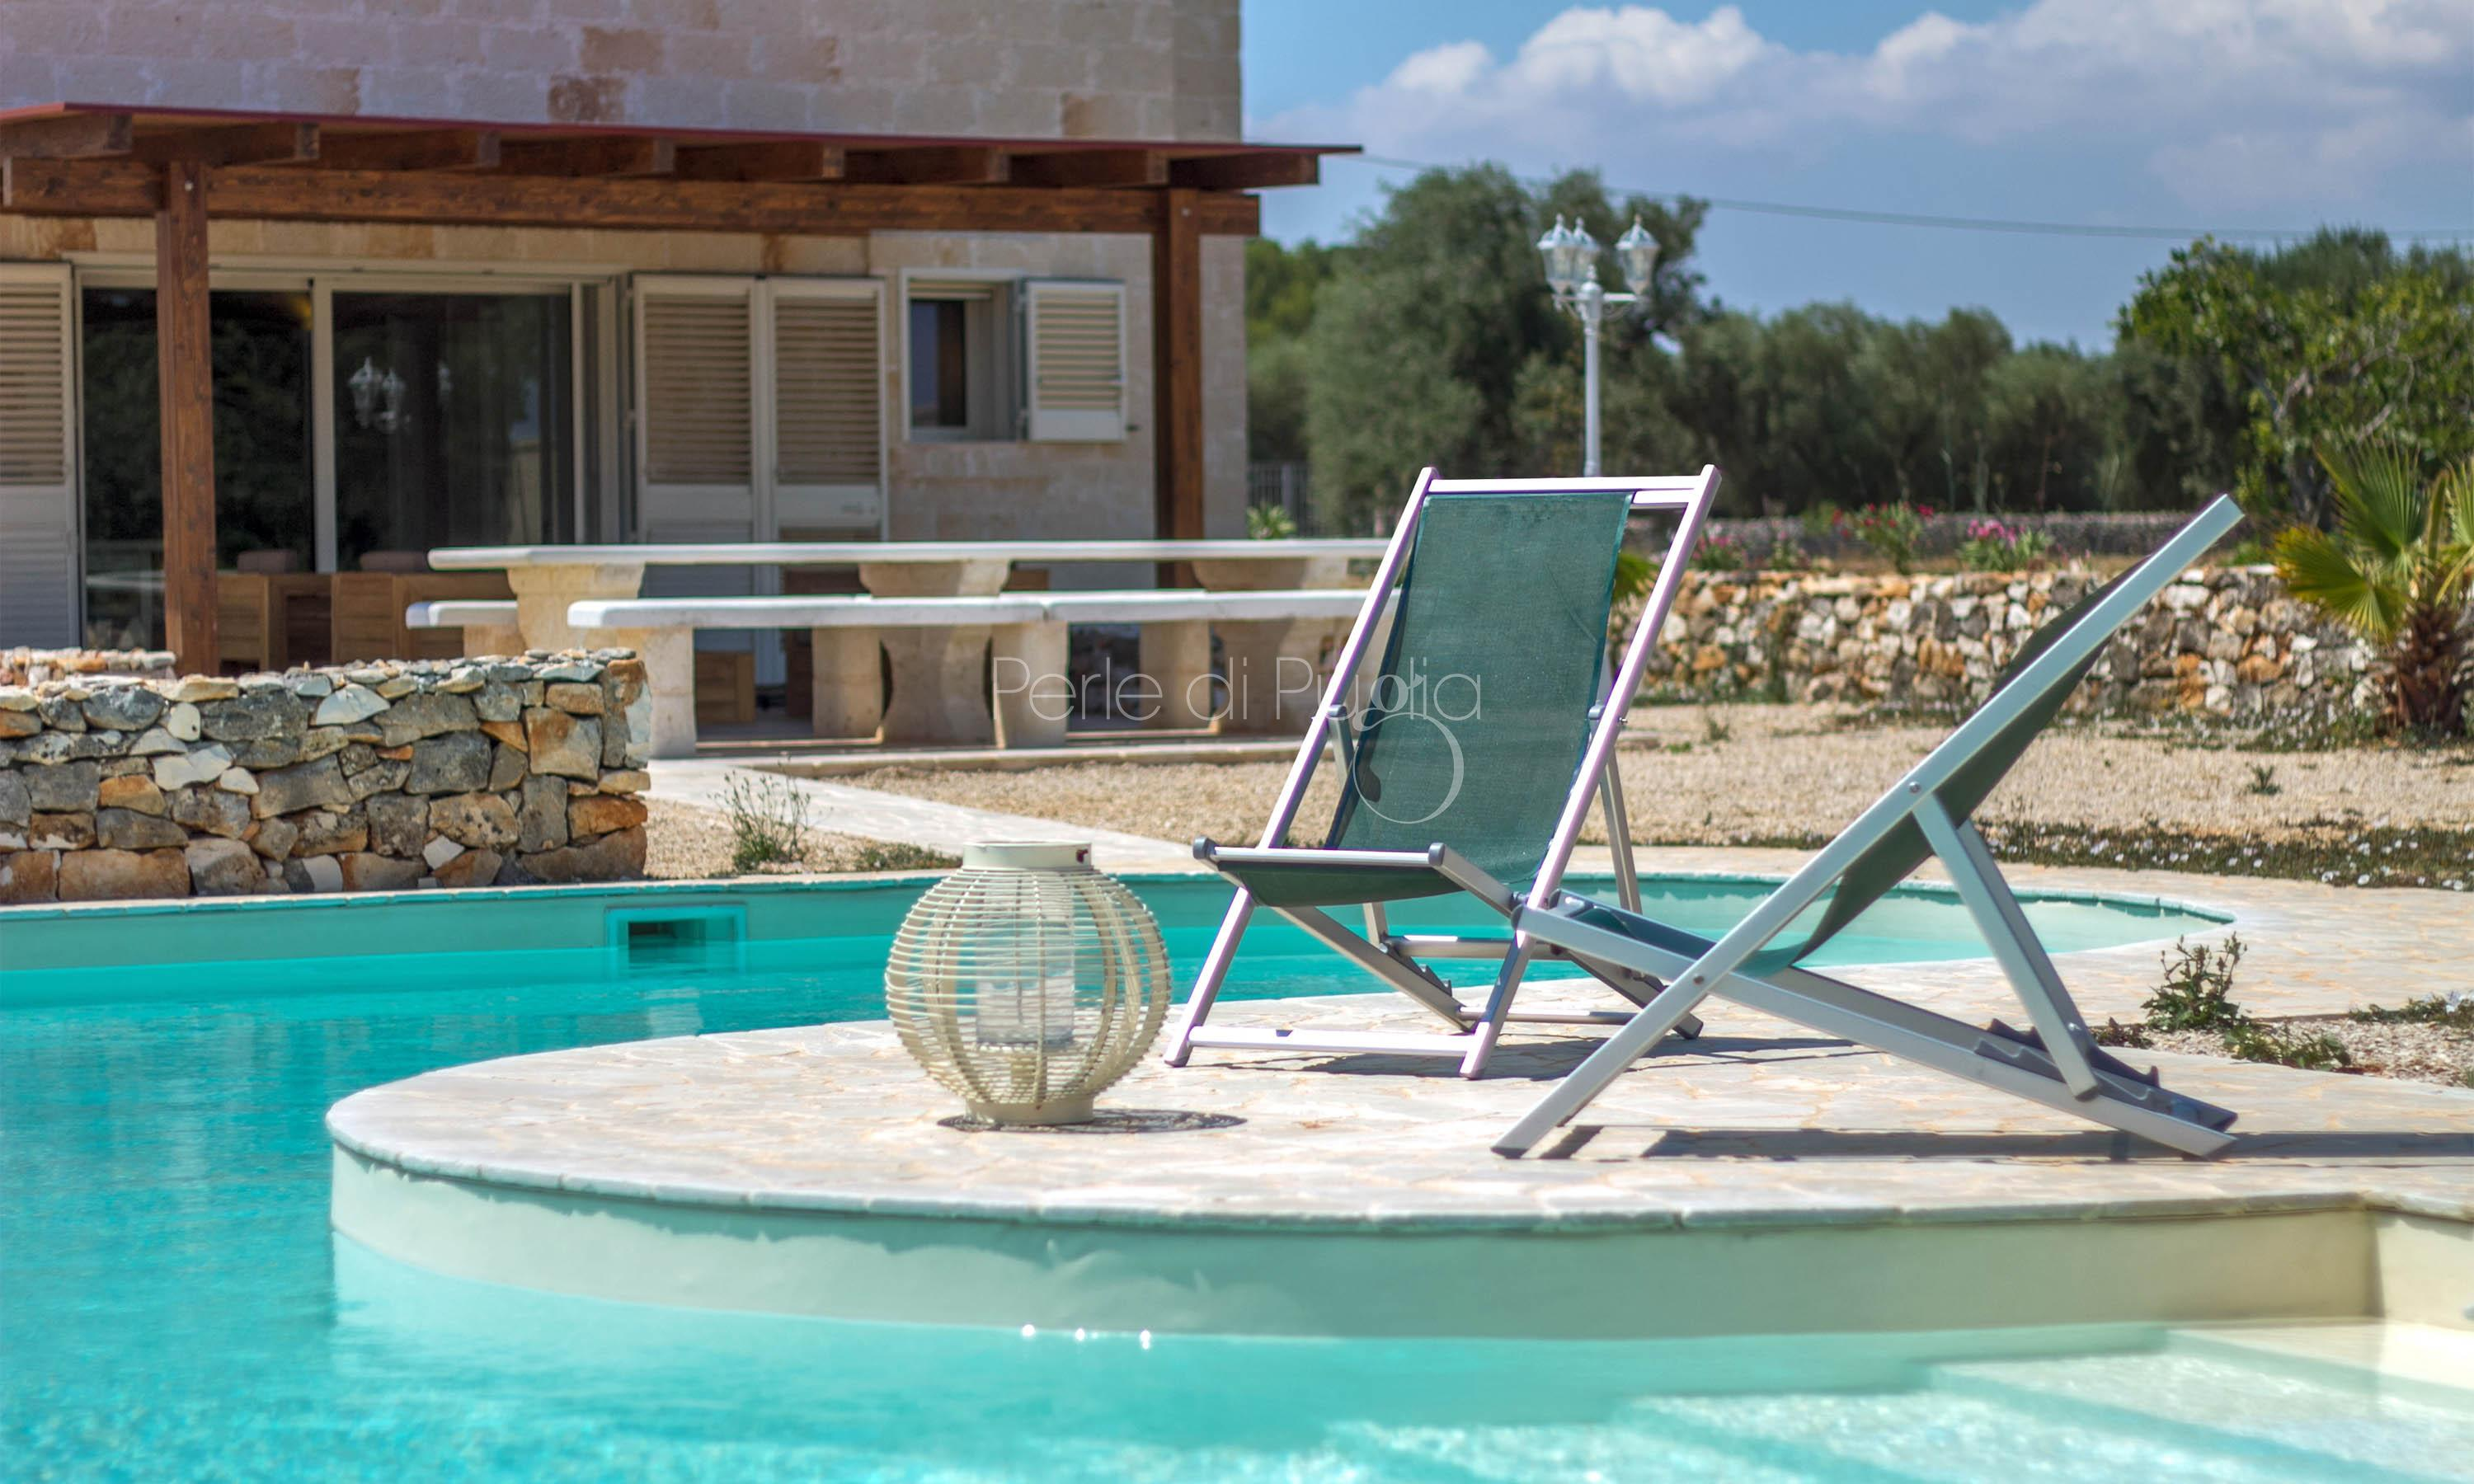 villa maria online hookup & dating The villa: villa maria,  cala murada has had settlements dating back to the bronze age and there are rumours of a murky past involving smugglers,.